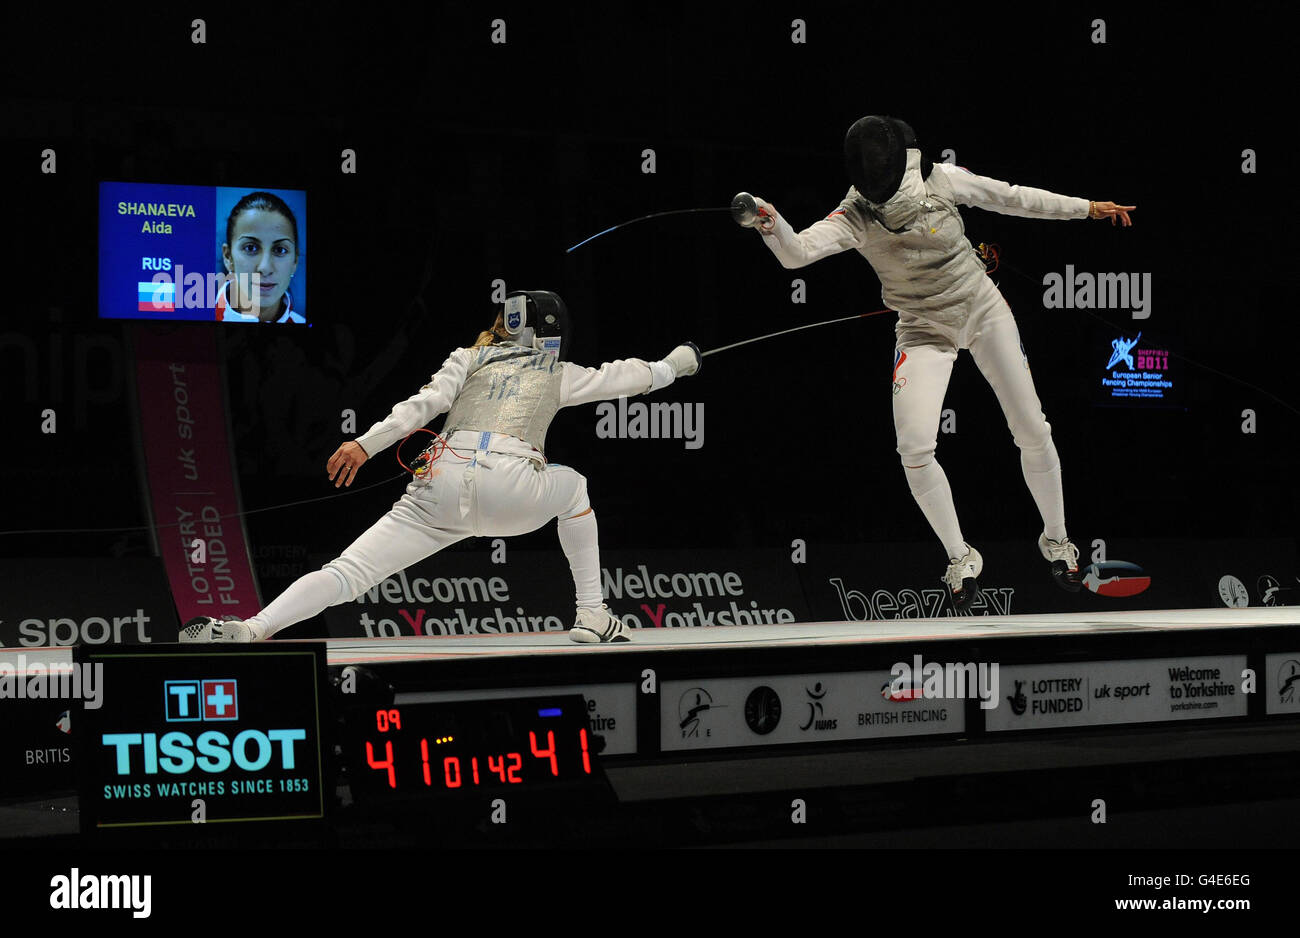 Watch Ellen Preis foil fencer, Olympic champion and 3-time world champion video